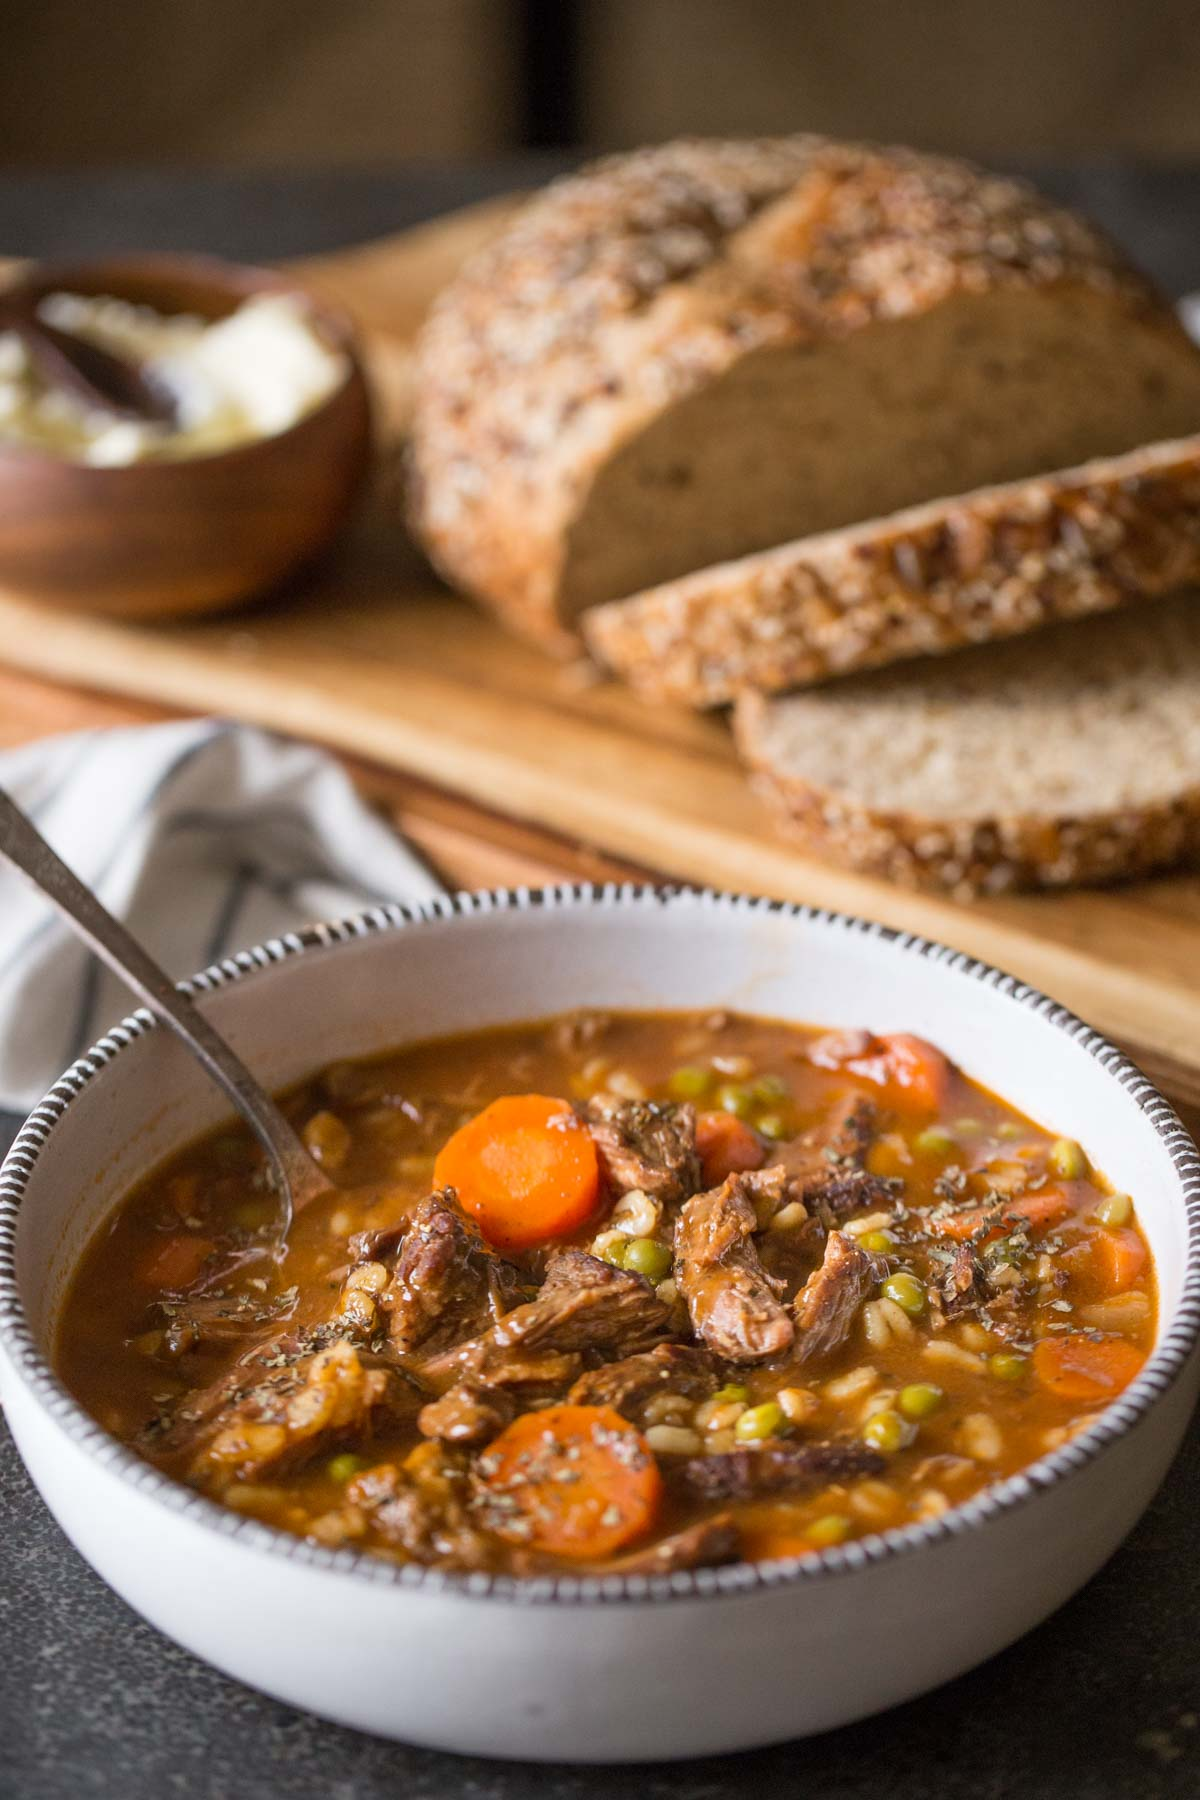 Beef and Barley Vegetable Soup in a bowl with a spoon, sitting next to a cutting board with bread and a small bowl of soft butter.